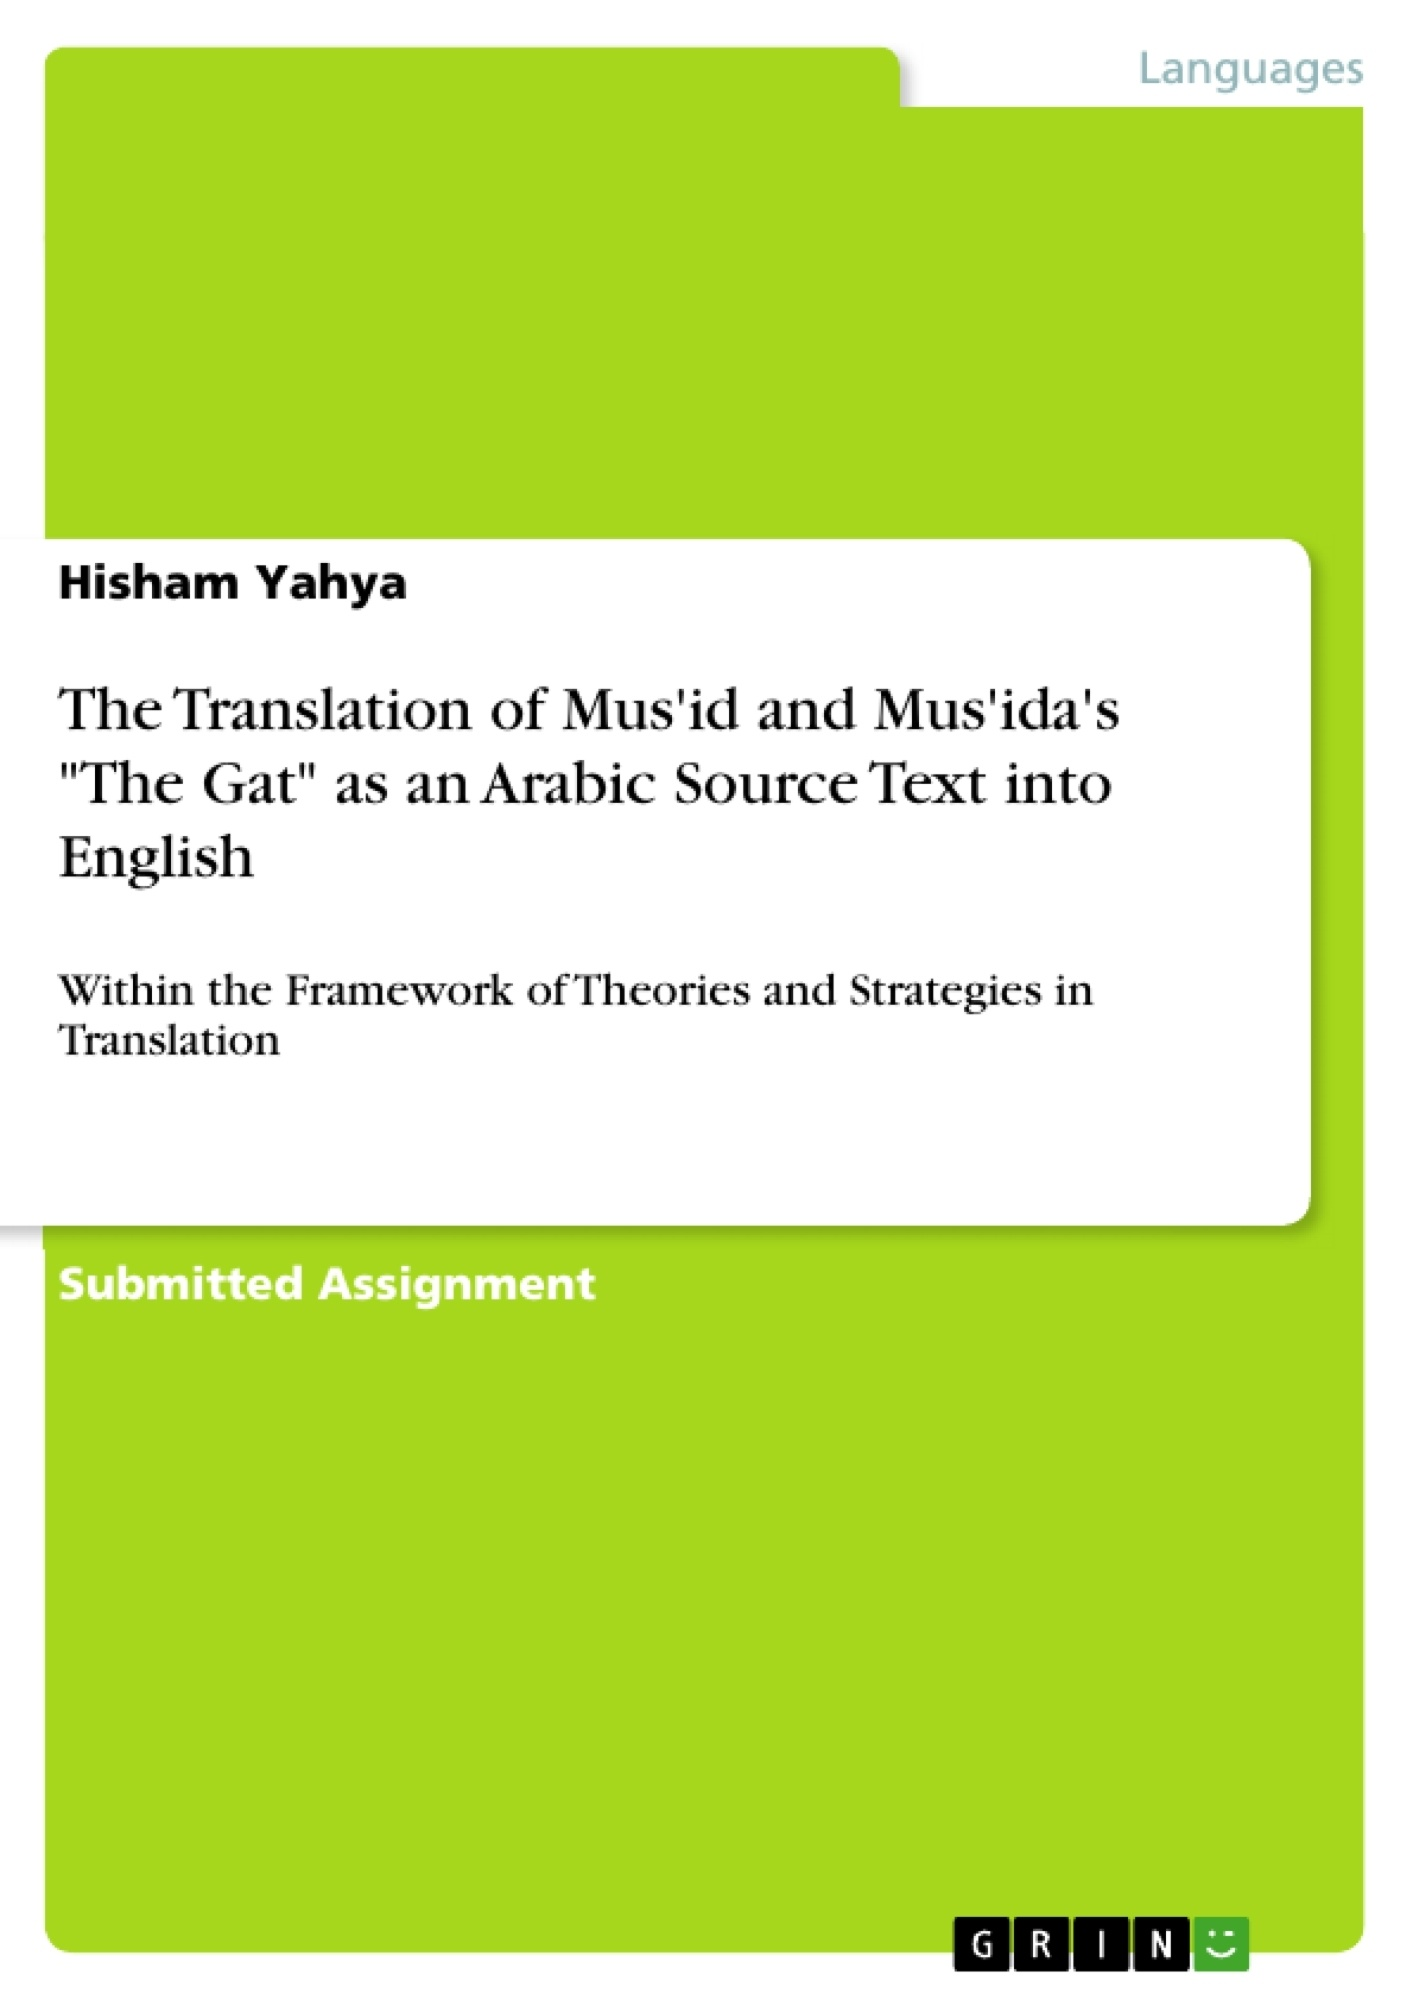 """Title: The Translation of Mus'id and Mus'ida's """"The Gat"""" as an Arabic Source Text into English"""